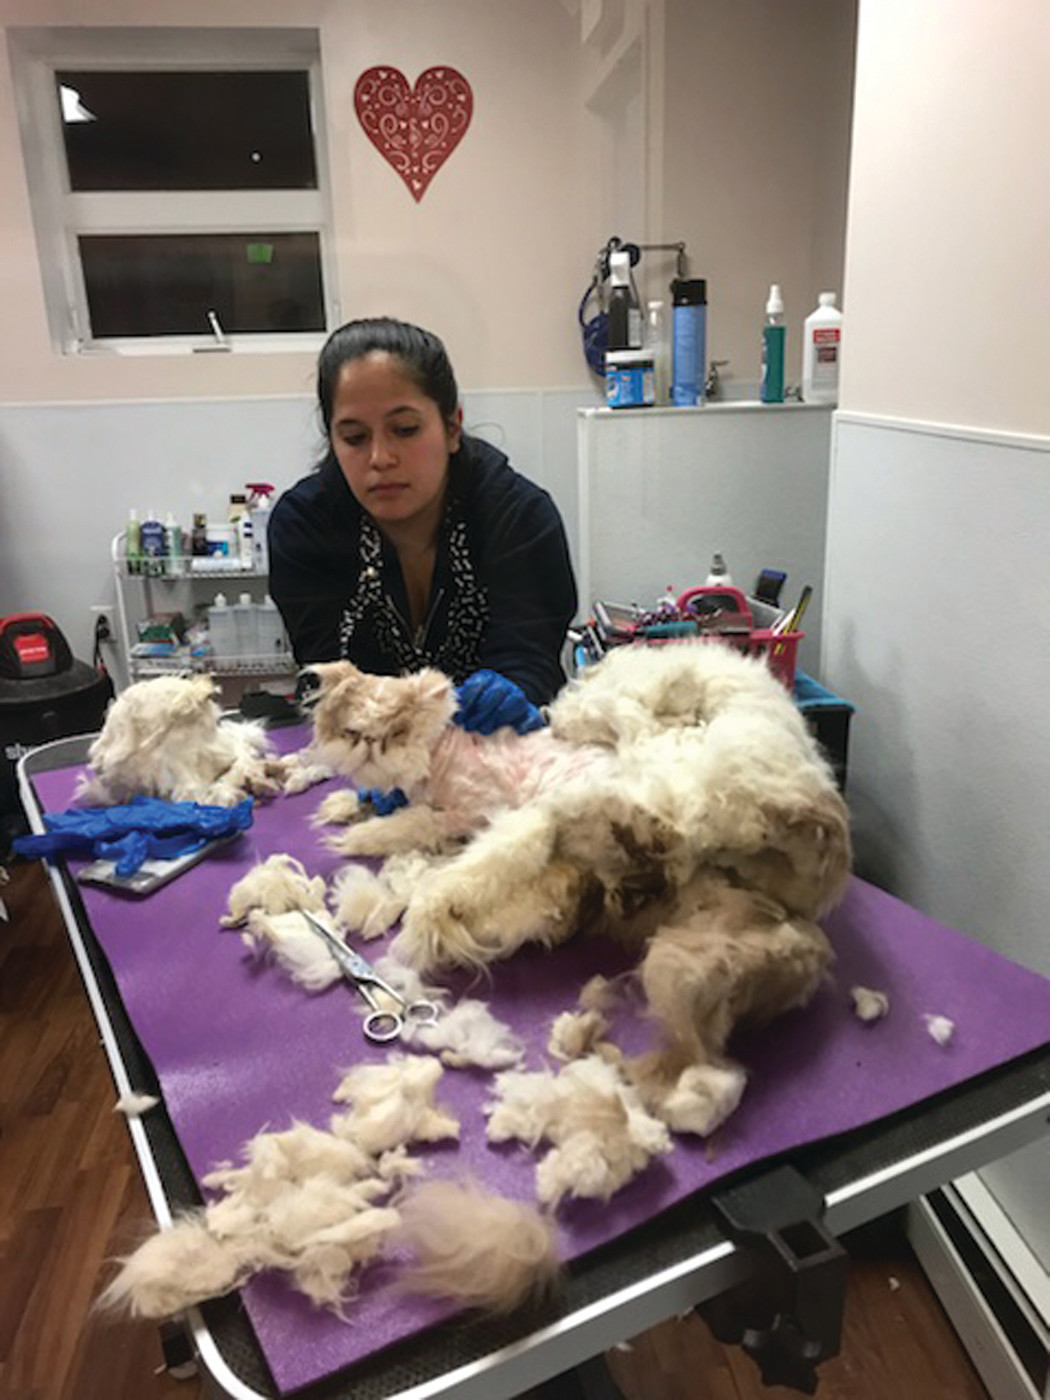 BEFORE: The cat that was saved through a combined effort between a property manager's vigilance, Warwick Animal Control, Warwick Animal Hospital and Purrs And Paws animal groomer while being attended to by Stephanie Fisher of Purrs and Paws.